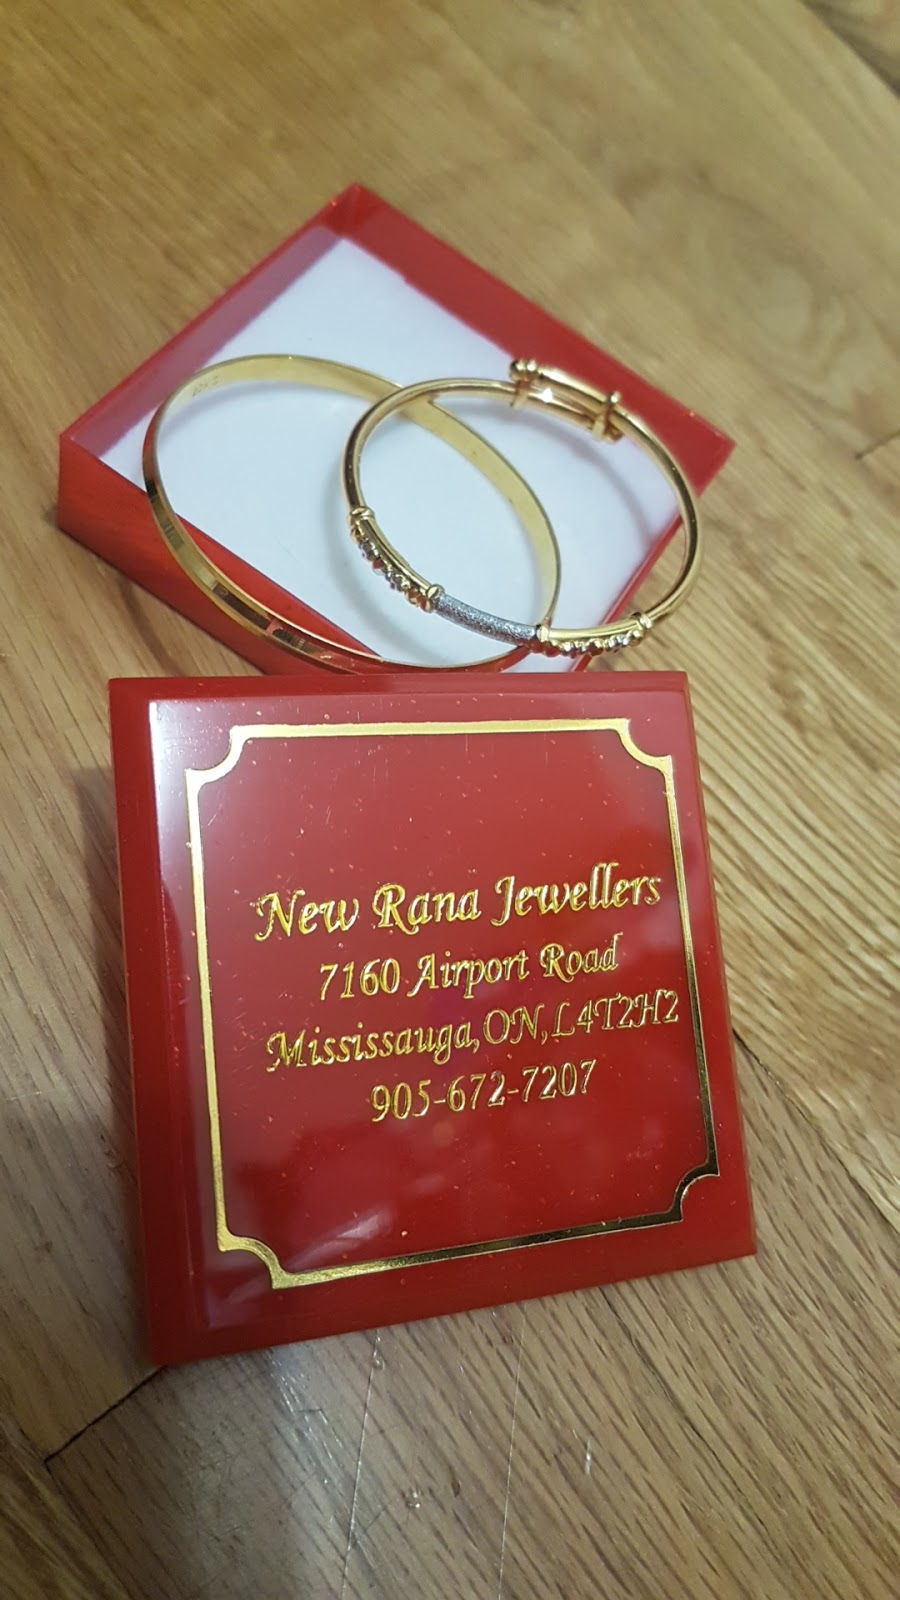 New Rana Jewellers Inc | clothing store | 7160 Airport Rd, Mississauga, ON L4T 2H2, Canada | 9056727207 OR +1 905-672-7207